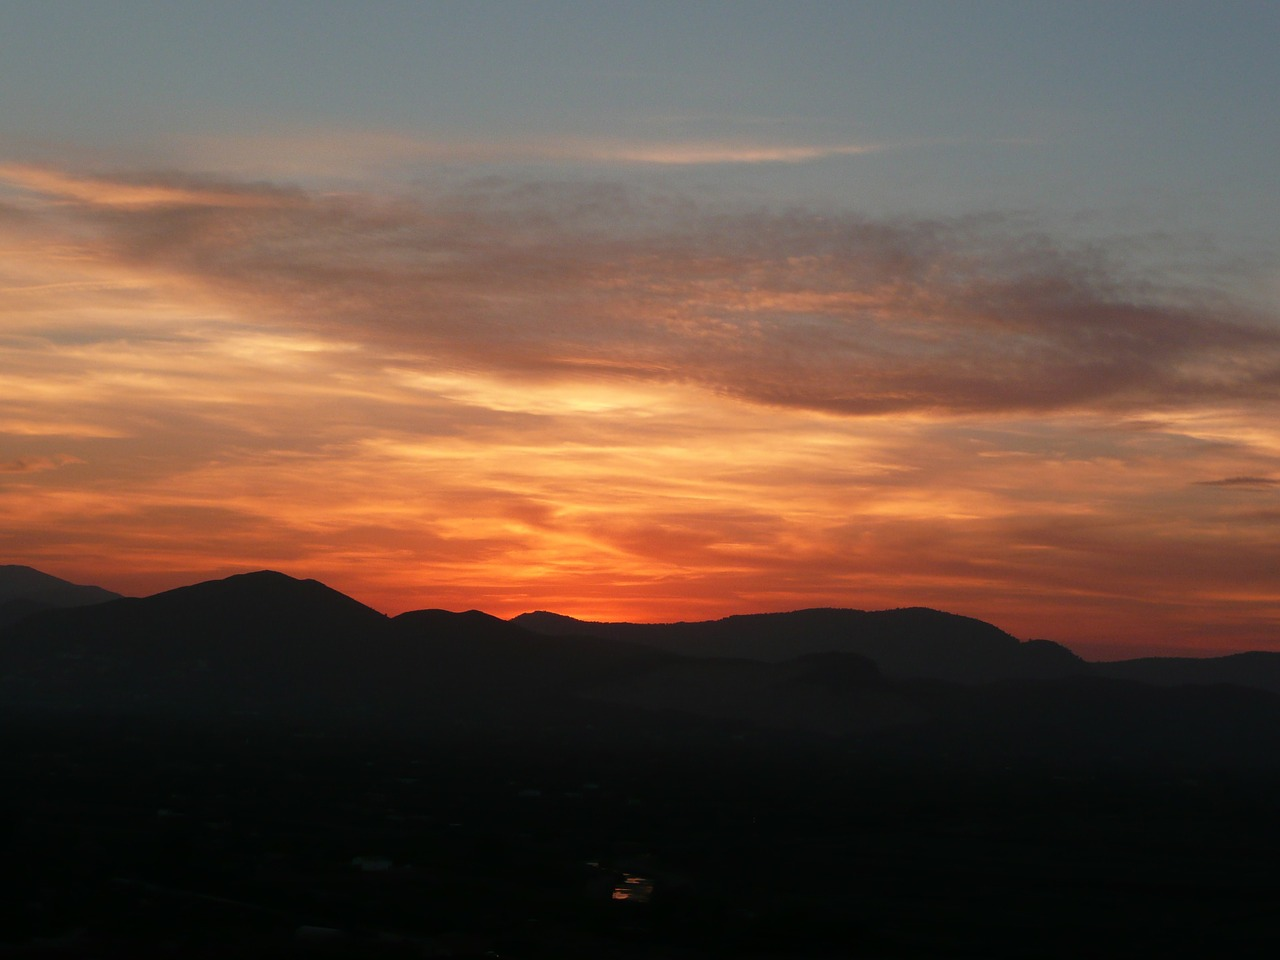 sunset spain monte pego free photo